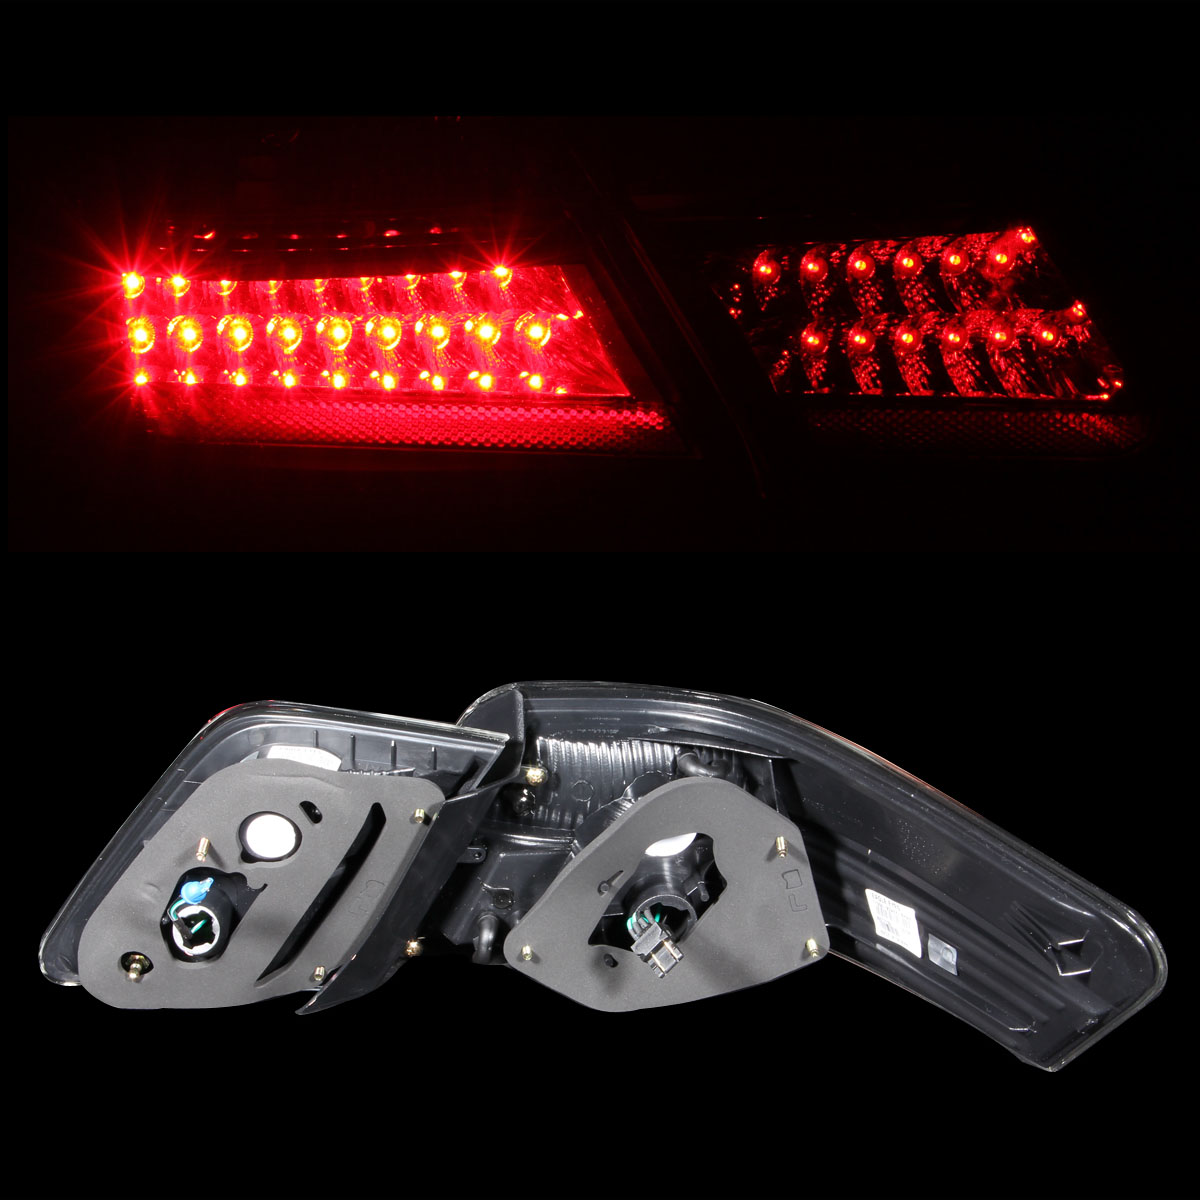 2007 2008 2009 toyota camry jdm style red led tail lights pair set ebay. Black Bedroom Furniture Sets. Home Design Ideas